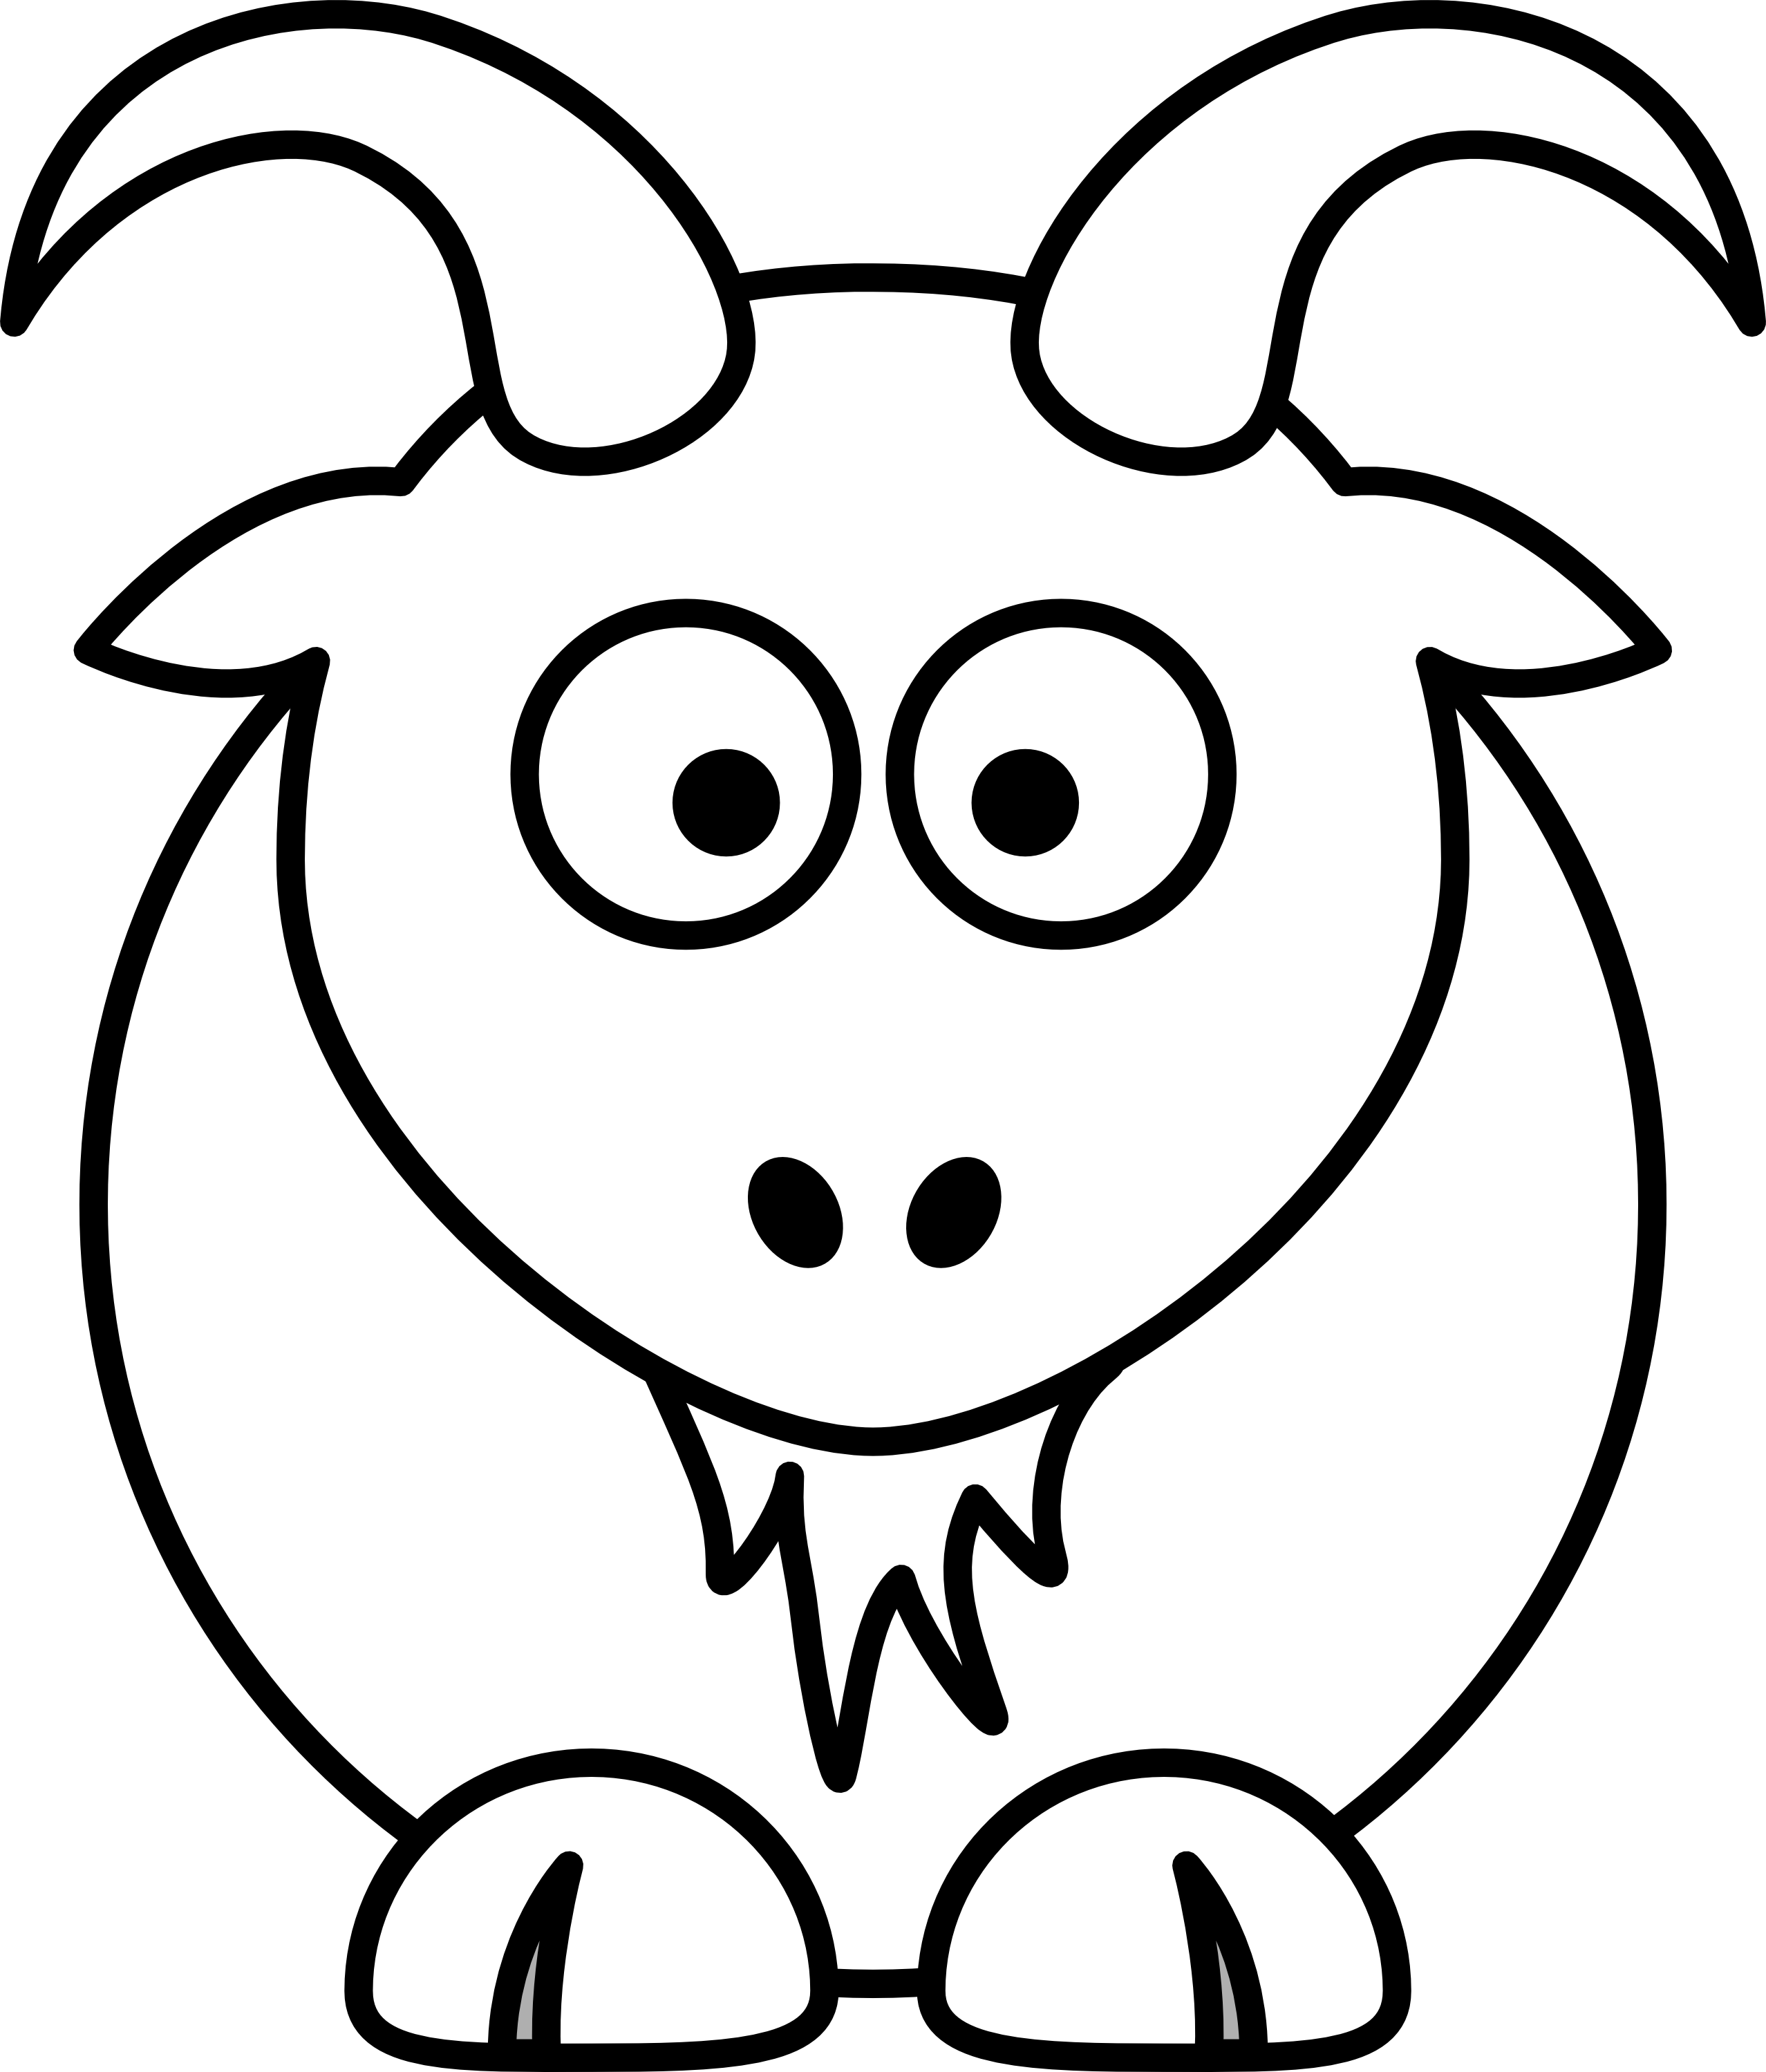 Free black and white animal clipart images svg black and white library Free Animal Black And White, Download Free Clip Art, Free Clip Art ... svg black and white library